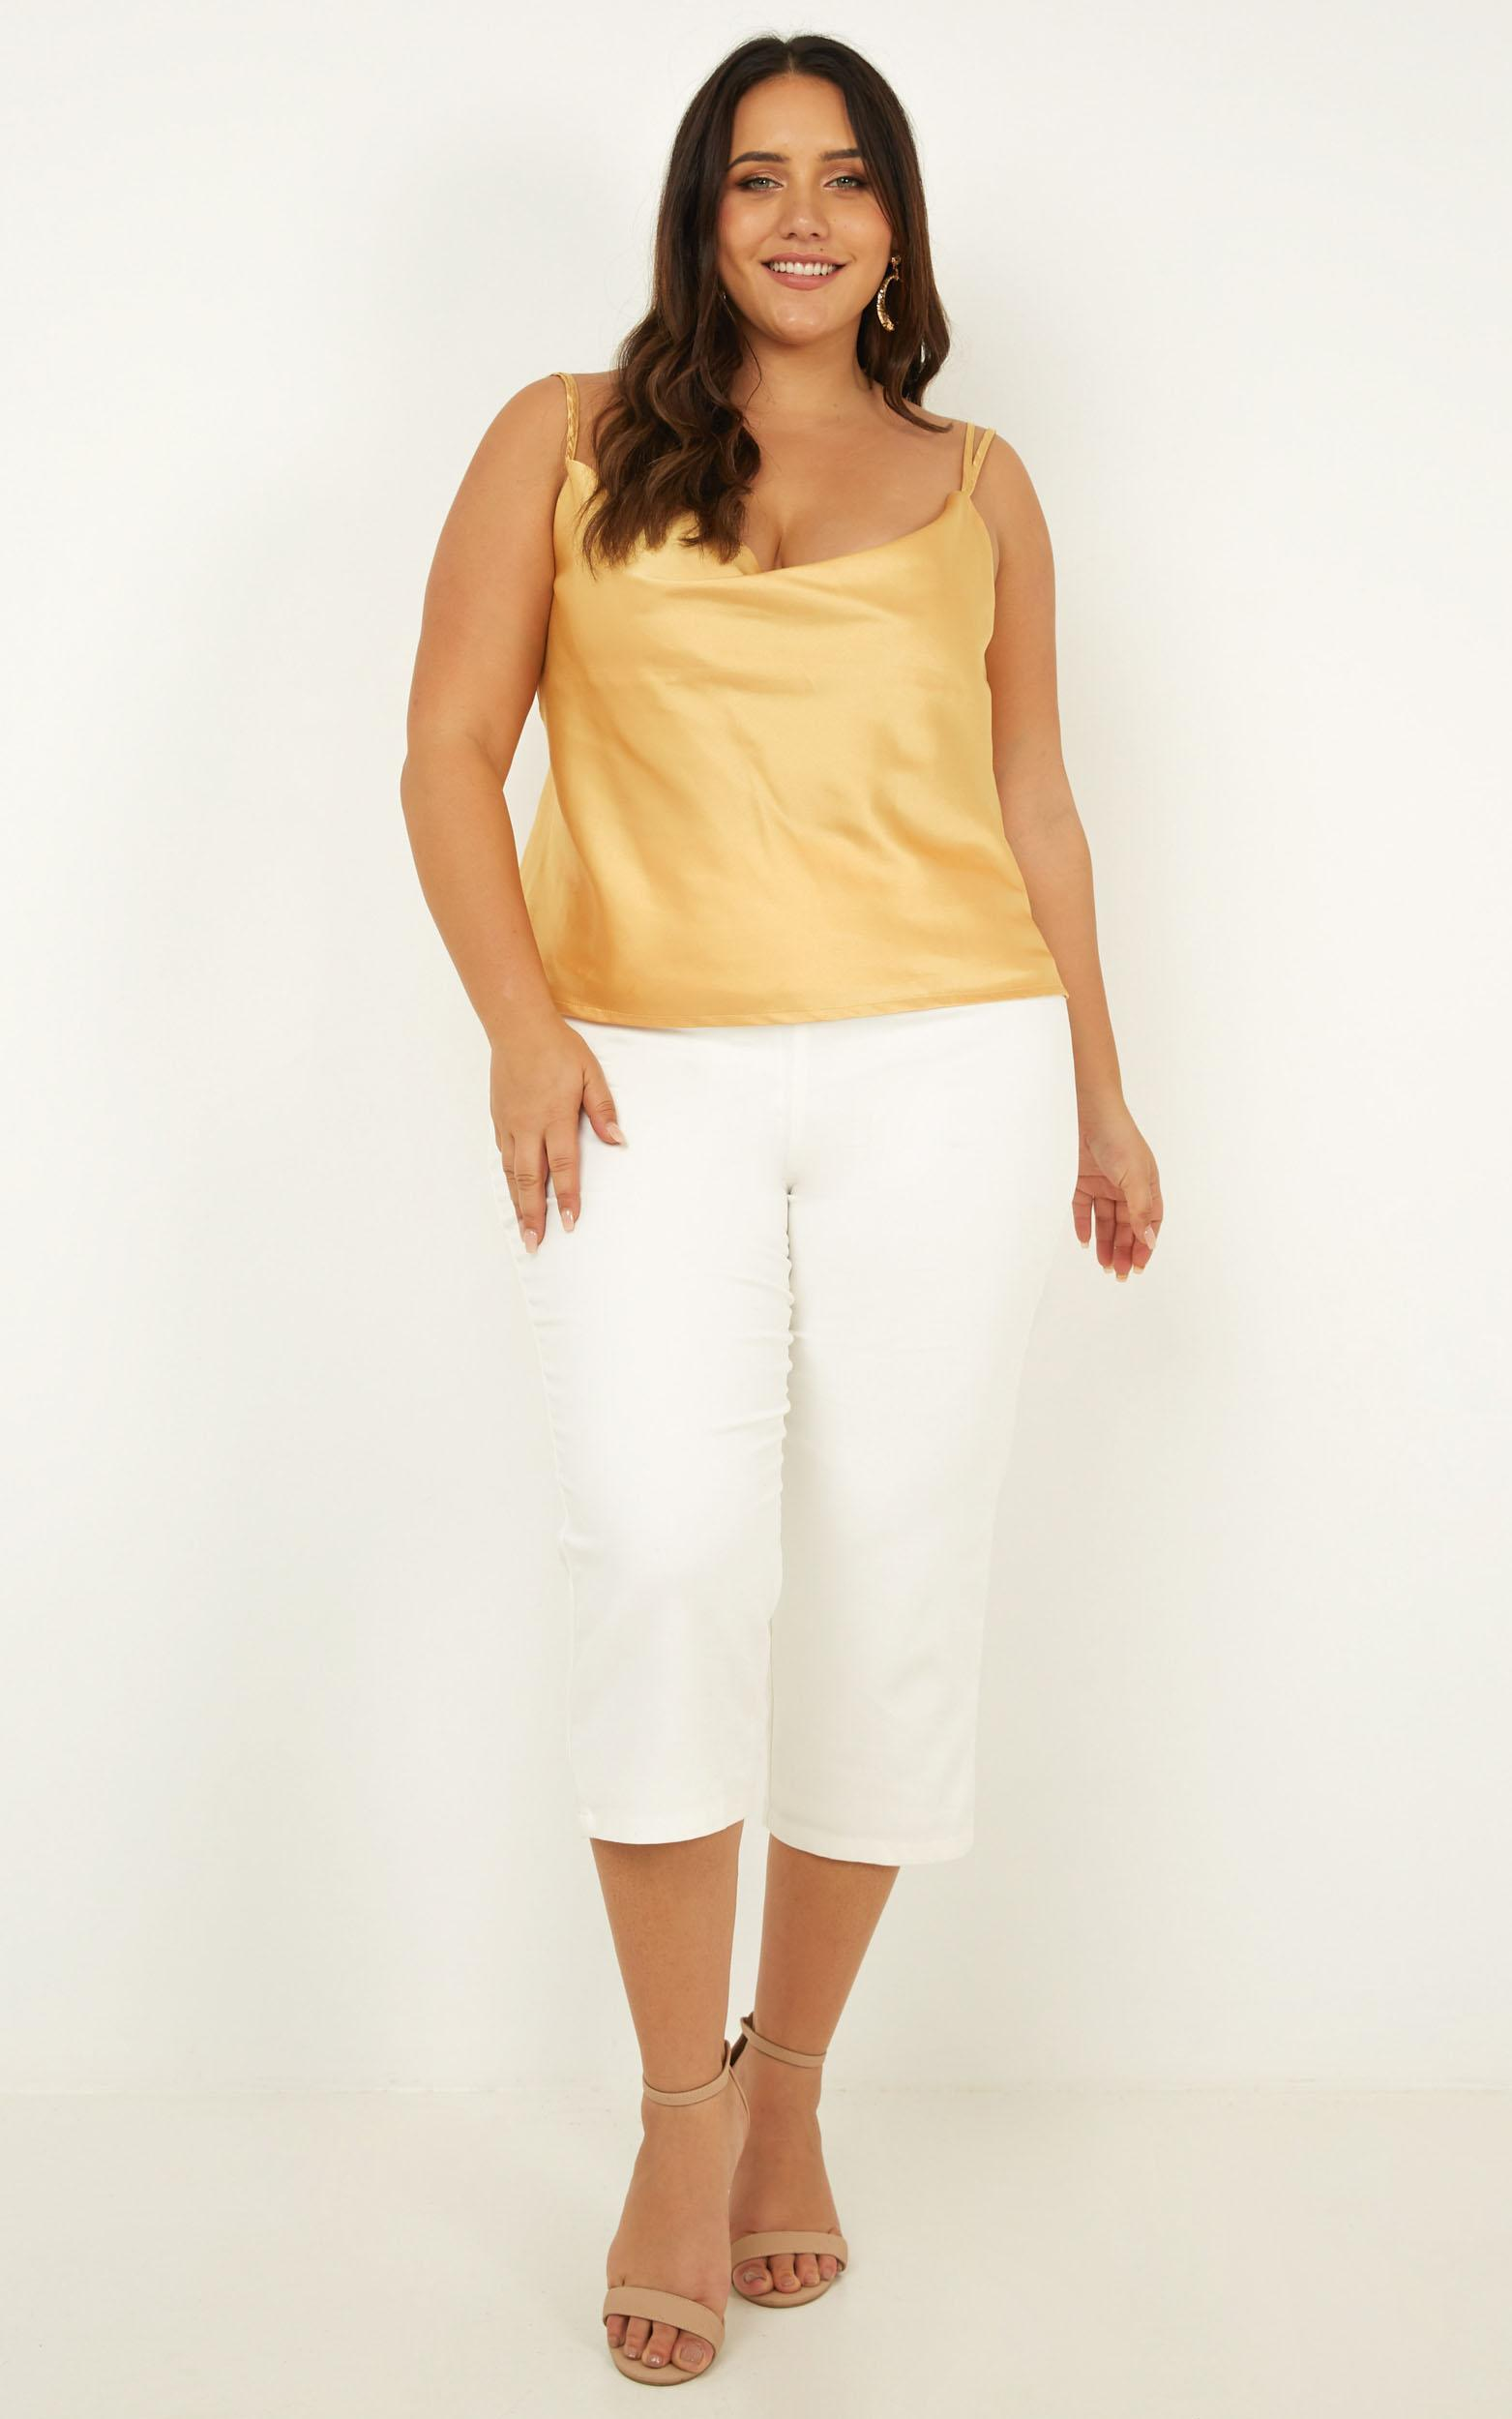 In My Mind Top In yellow satin - 20 (XXXXL), Yellow, hi-res image number null